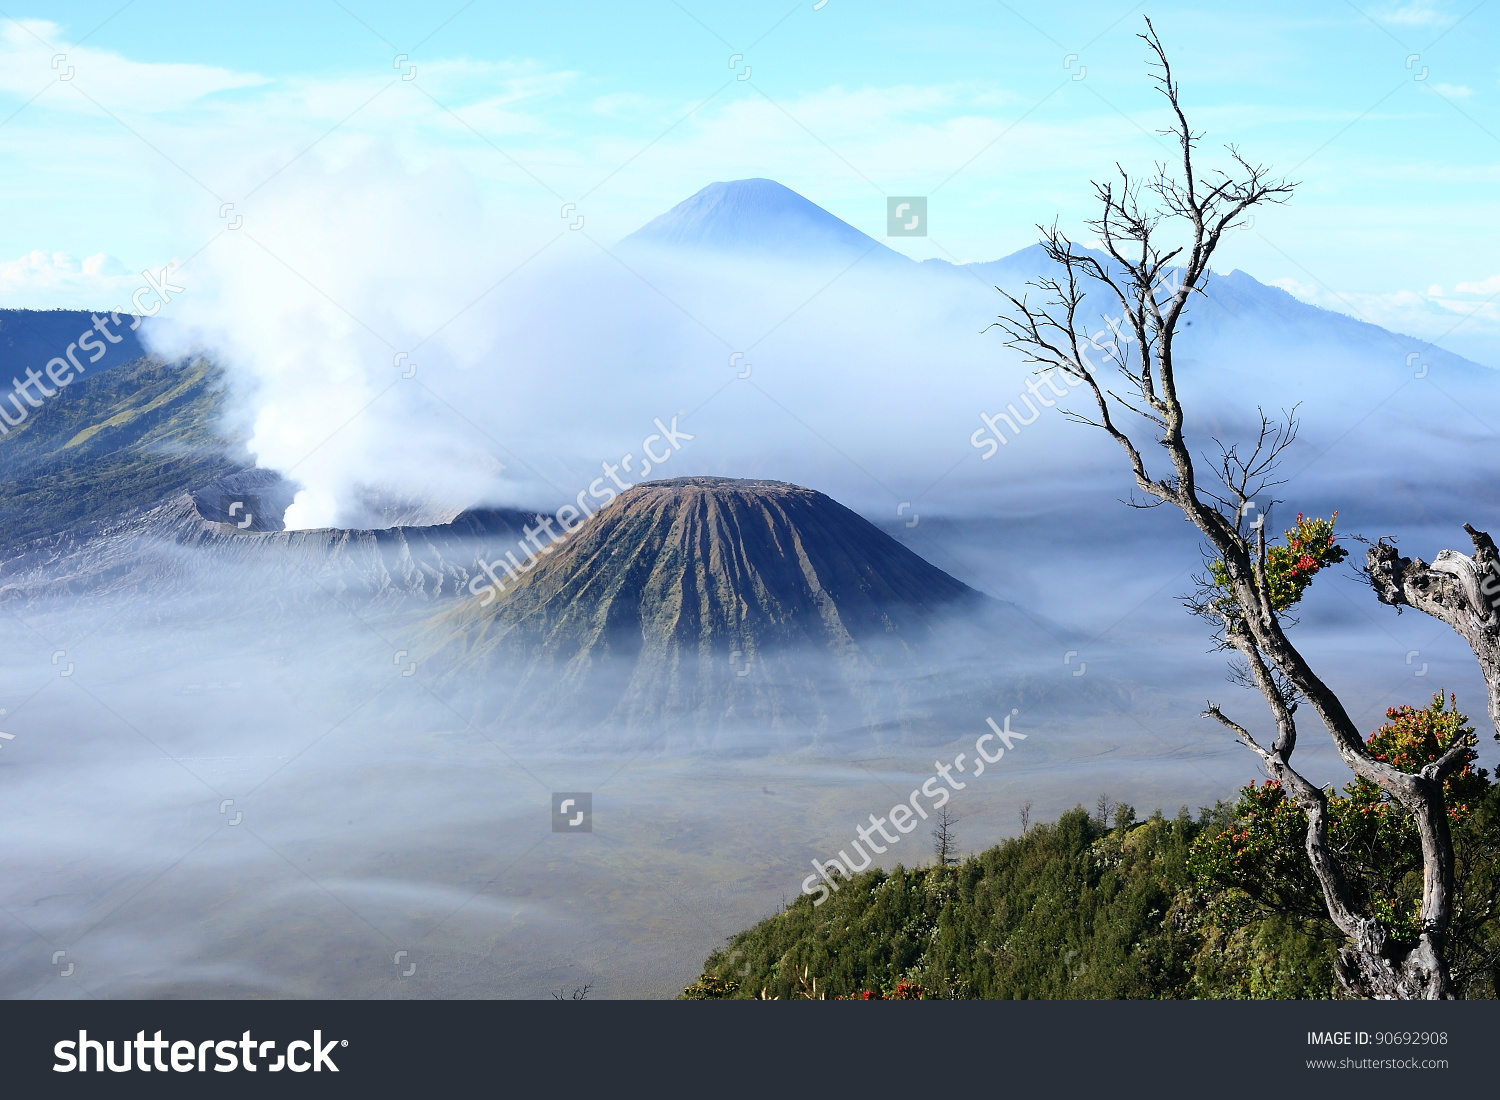 Mount Bromo clipart #2, Download drawings